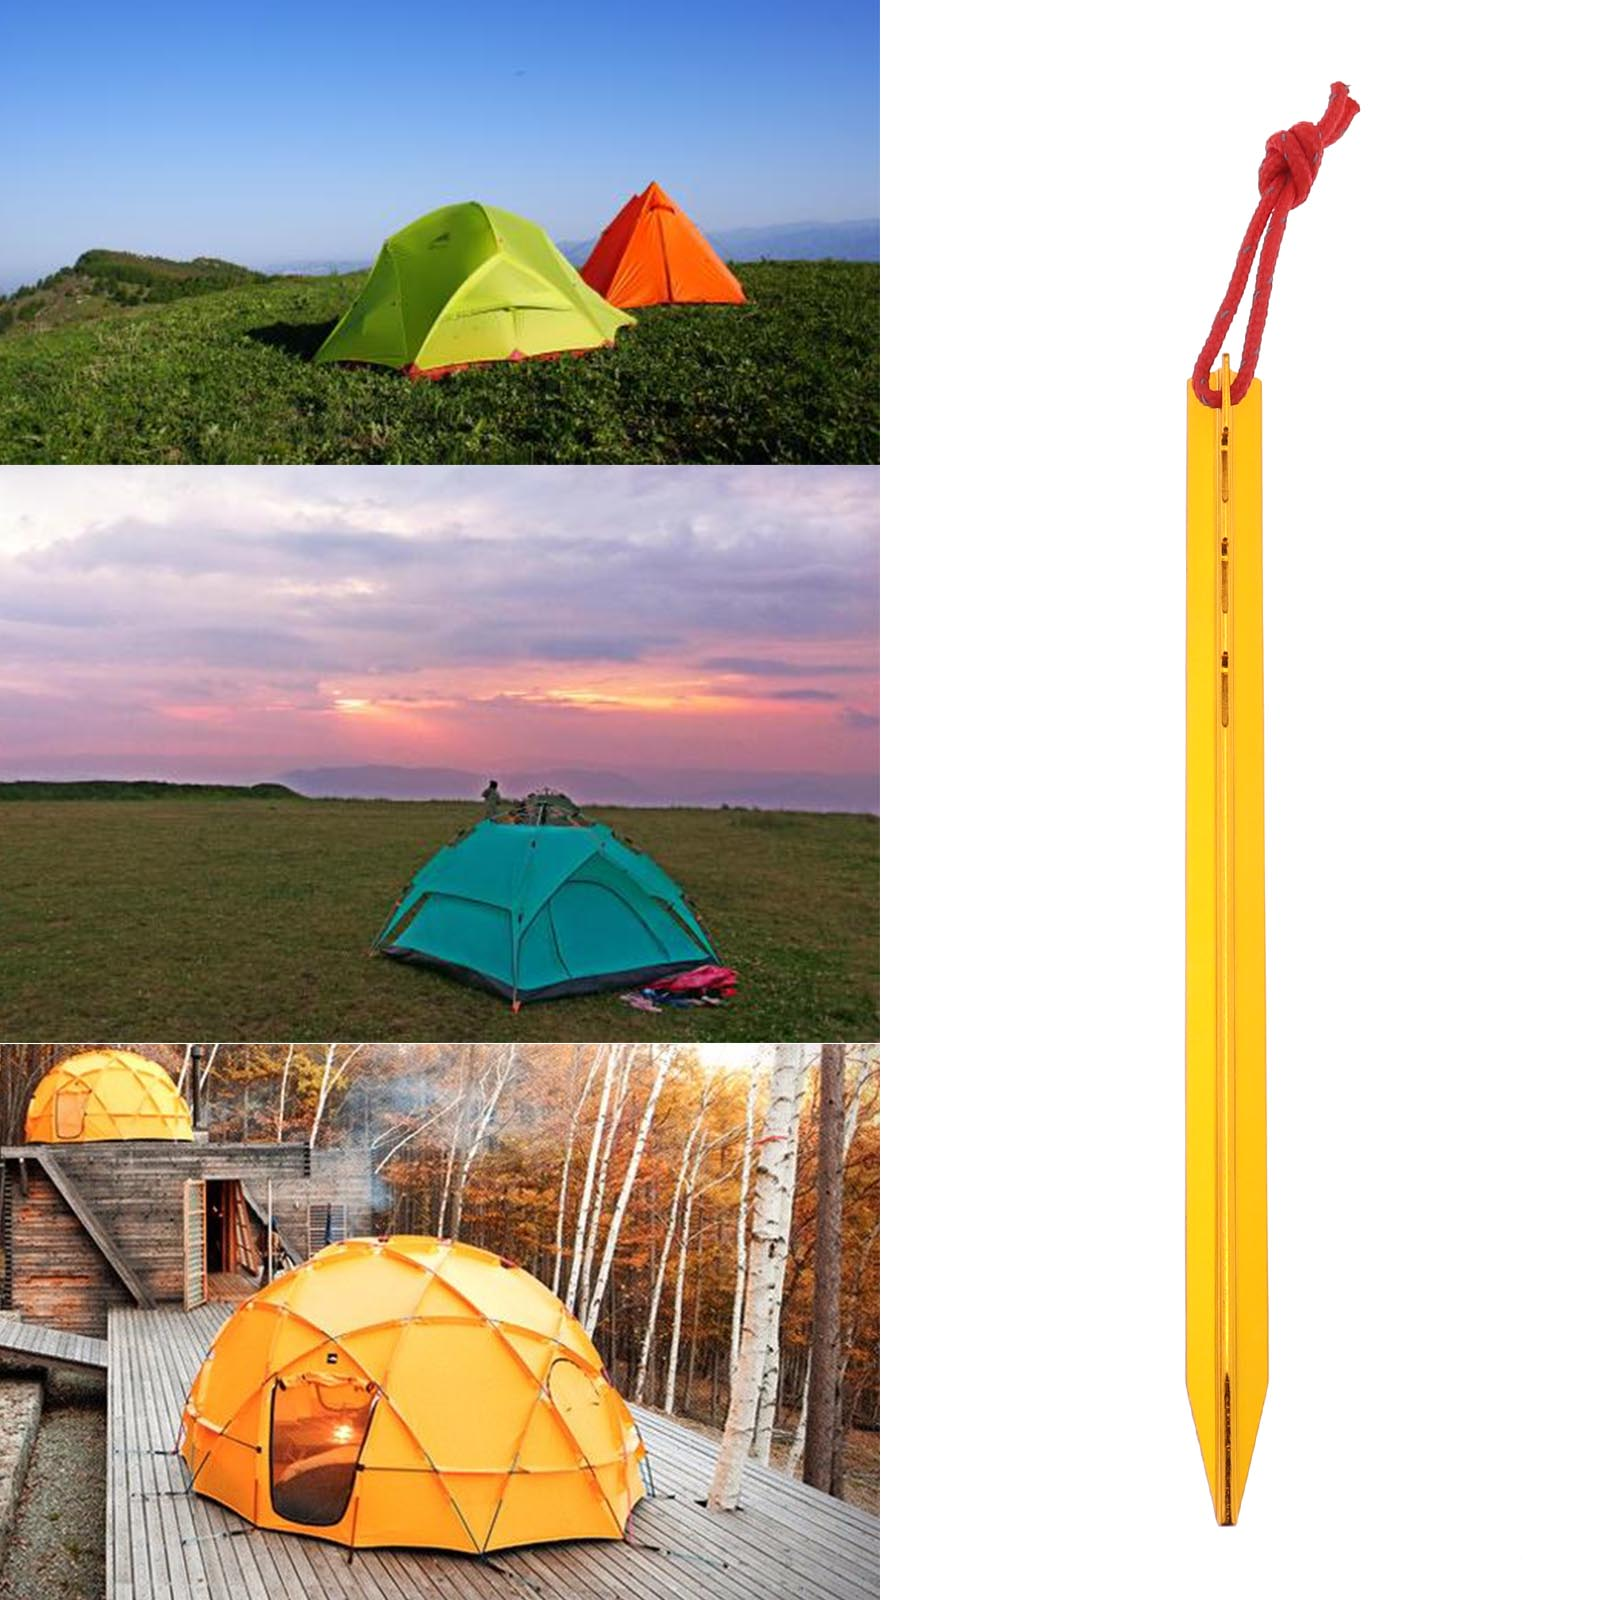 20pcs Tent Nails Outdoor Camping Trip Tent Ground Sand Pegs Golden Durable